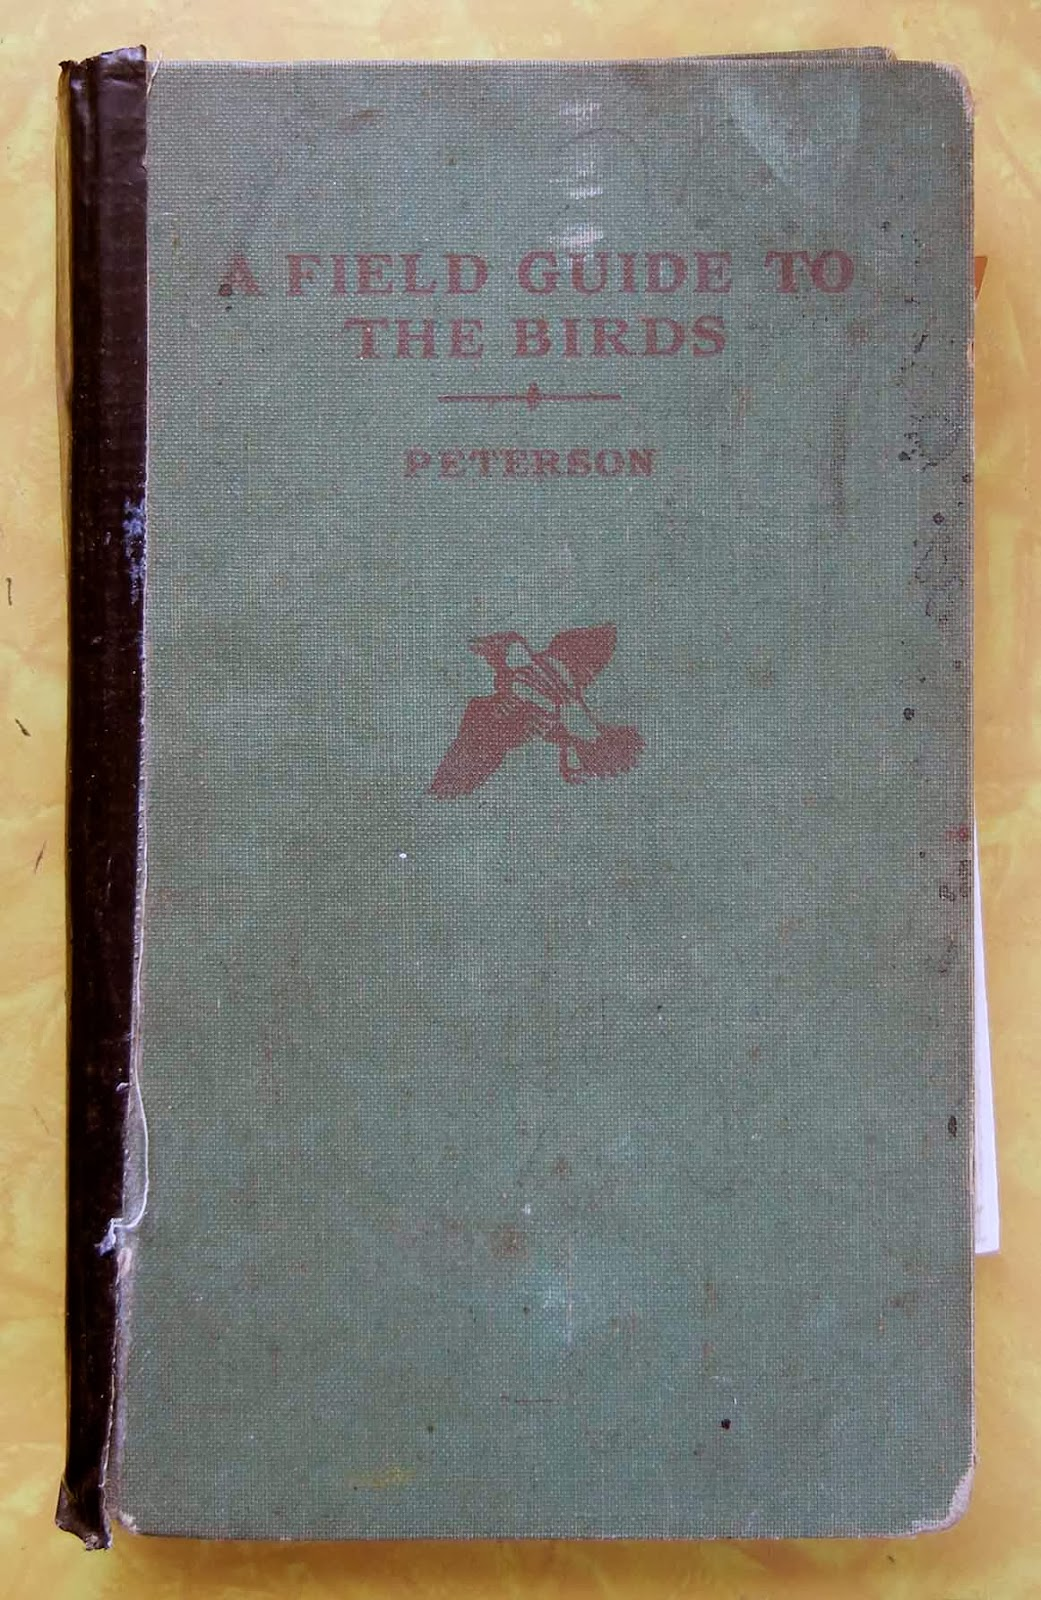 My 1965 Petersons Field Guide To Birds